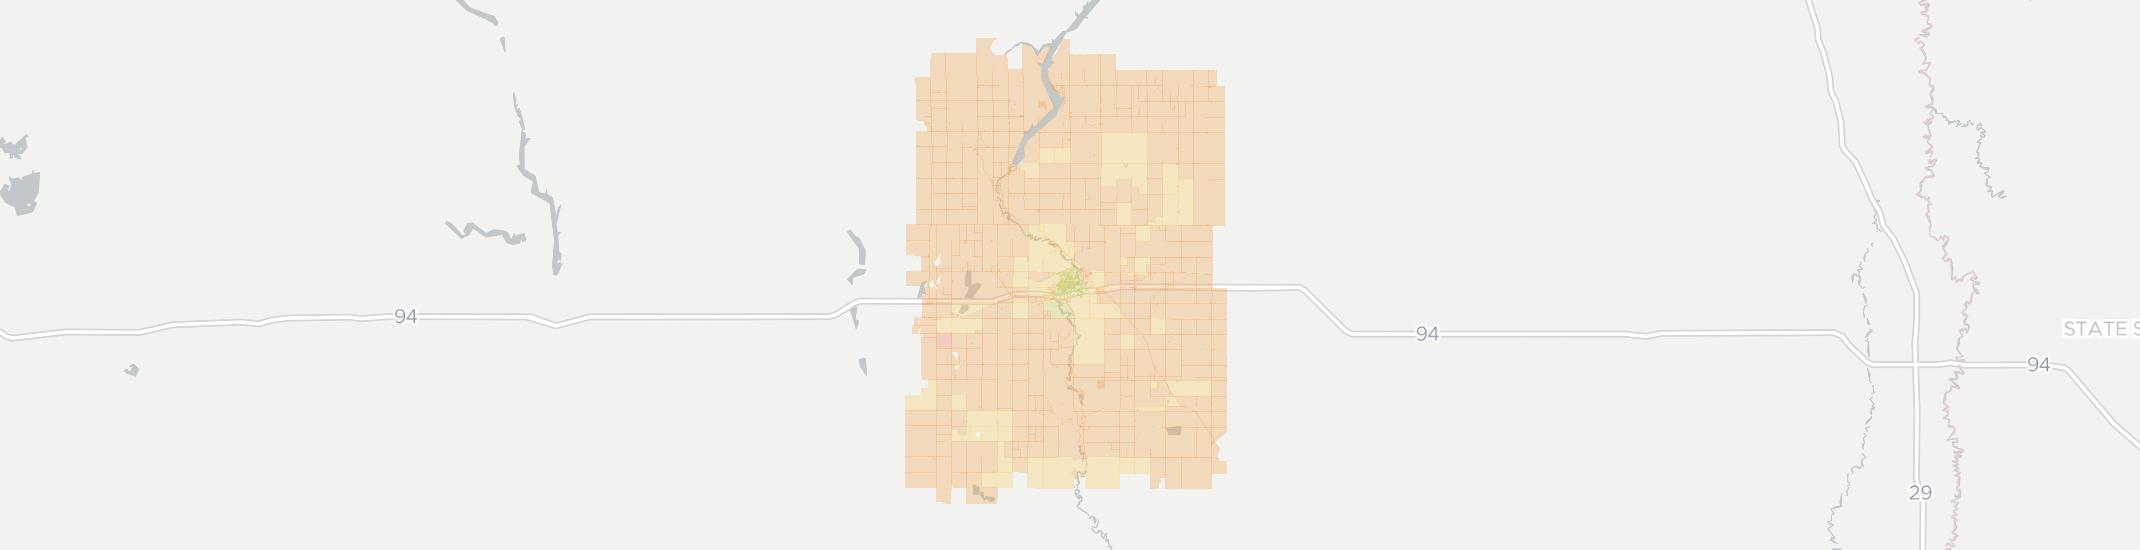 8 Best Internet Service Providers in Valley City, ND (Oct, 2019) Map Of Valley City North Dakota on map of paul's valley city, map of cities of the valley sun, taylor city of north dakota,